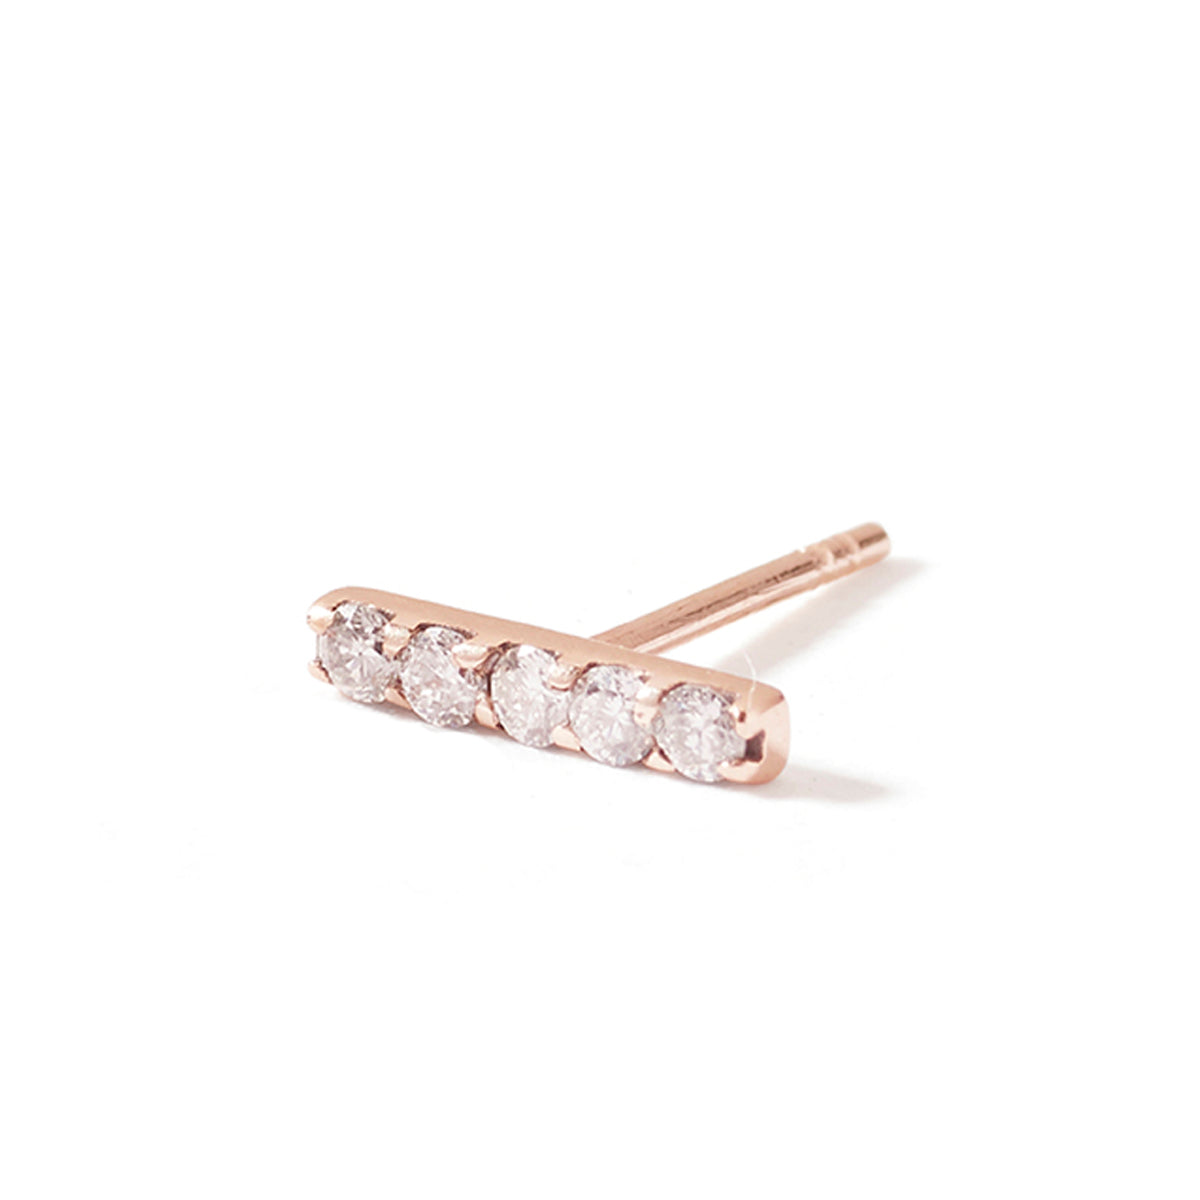 The Sapphire Bar Stud in 9kt Rose Gold